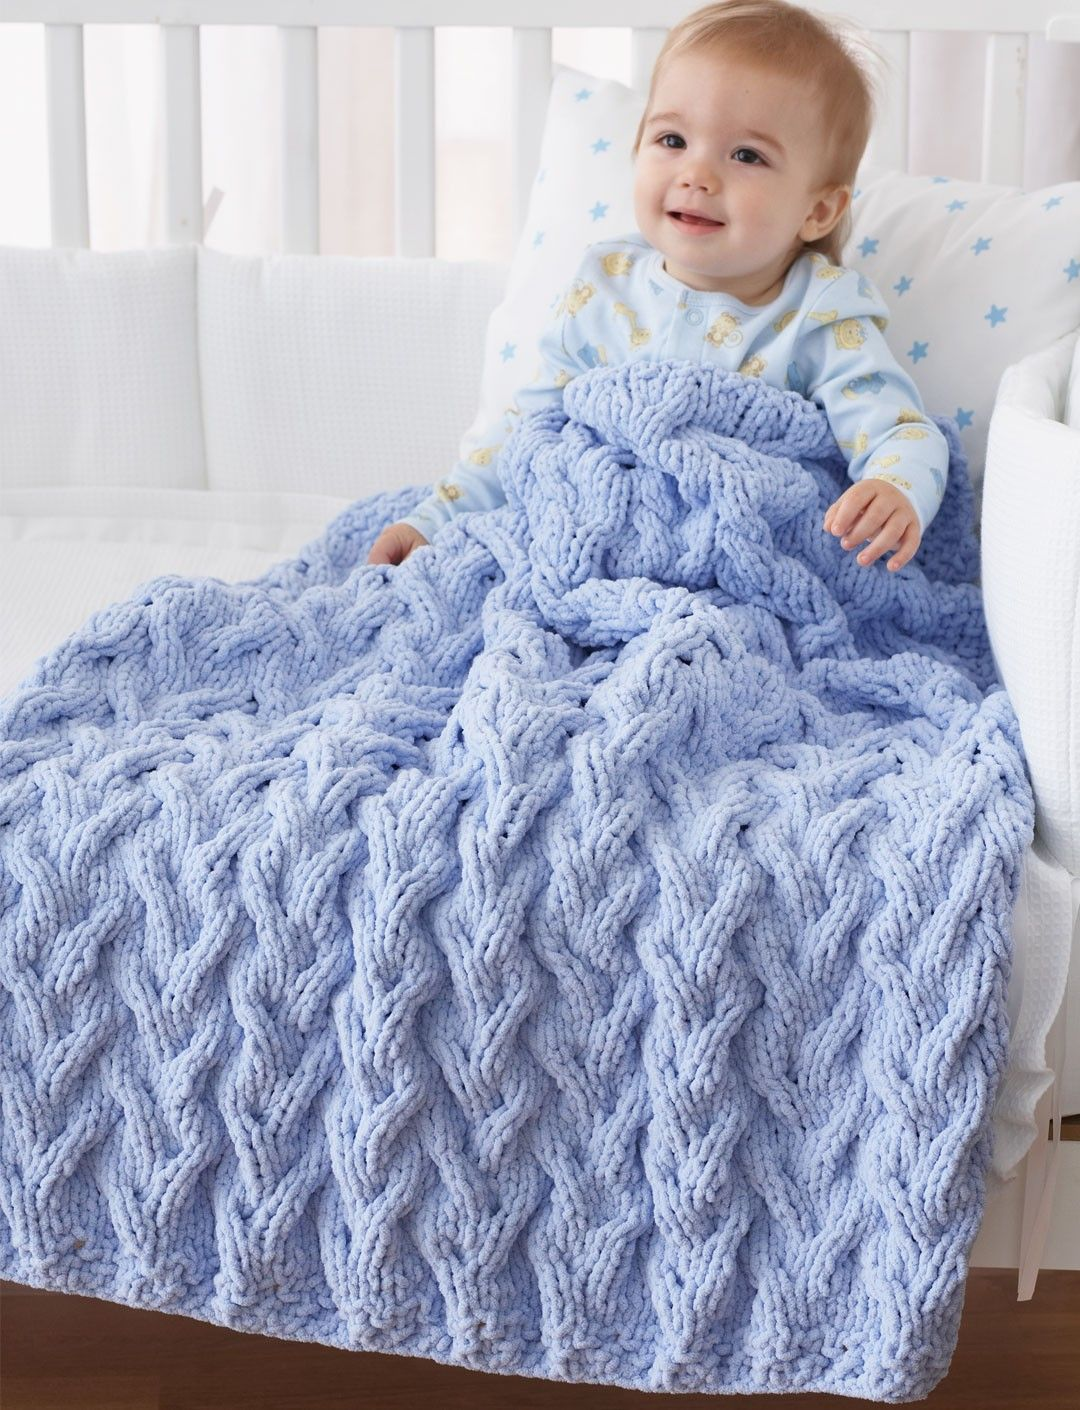 Knitting Blanket Patterns Free : Cable afghan knitting patterns blanket and